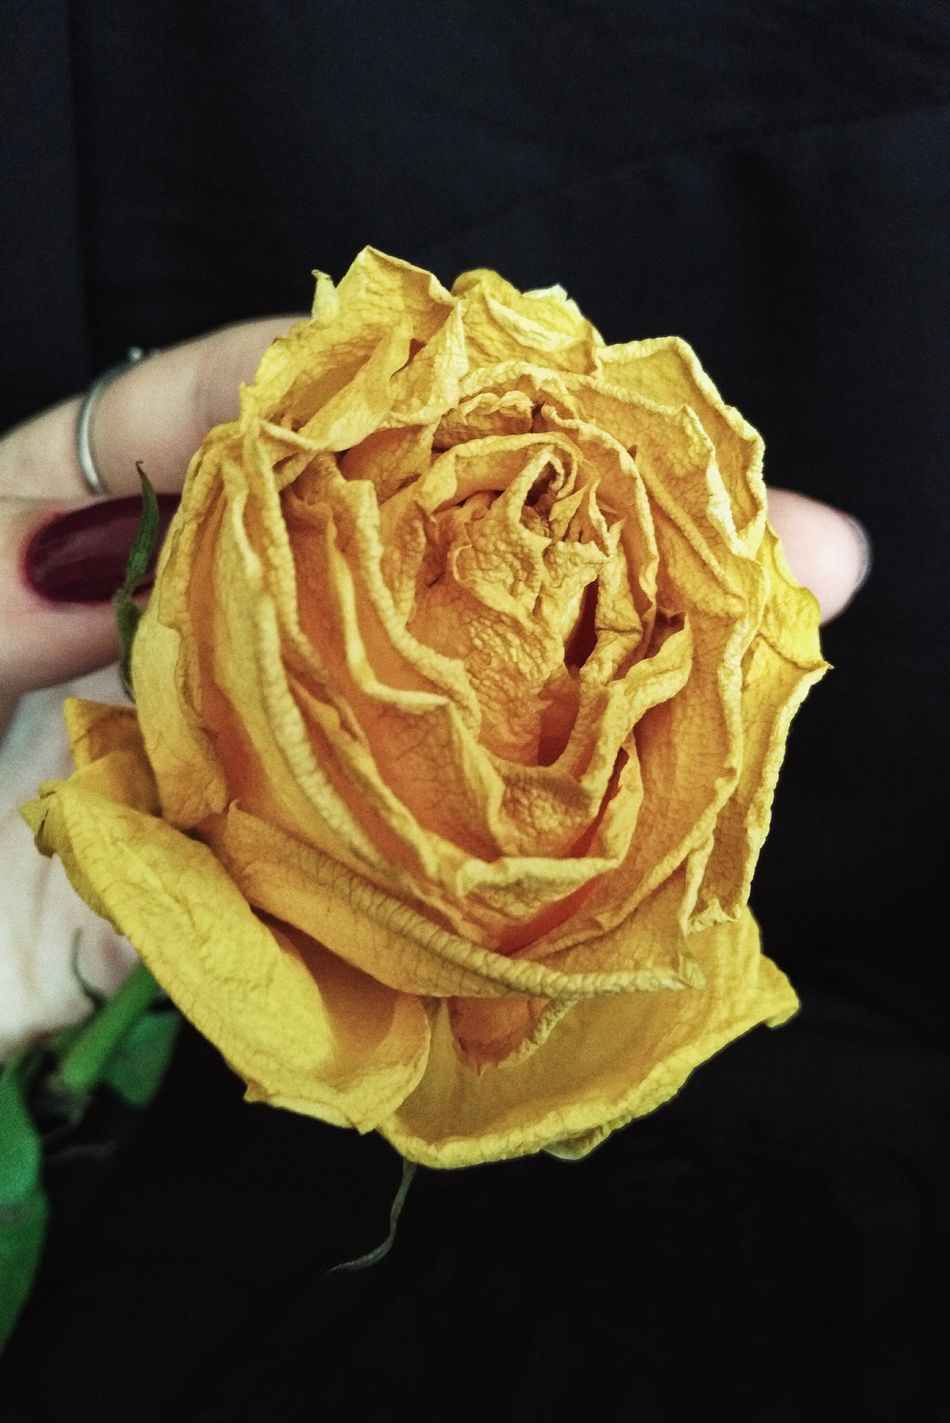 Black Background Close-up Beauty Rosé Yellow Rose Yellow Dead Flowers Dead Rose